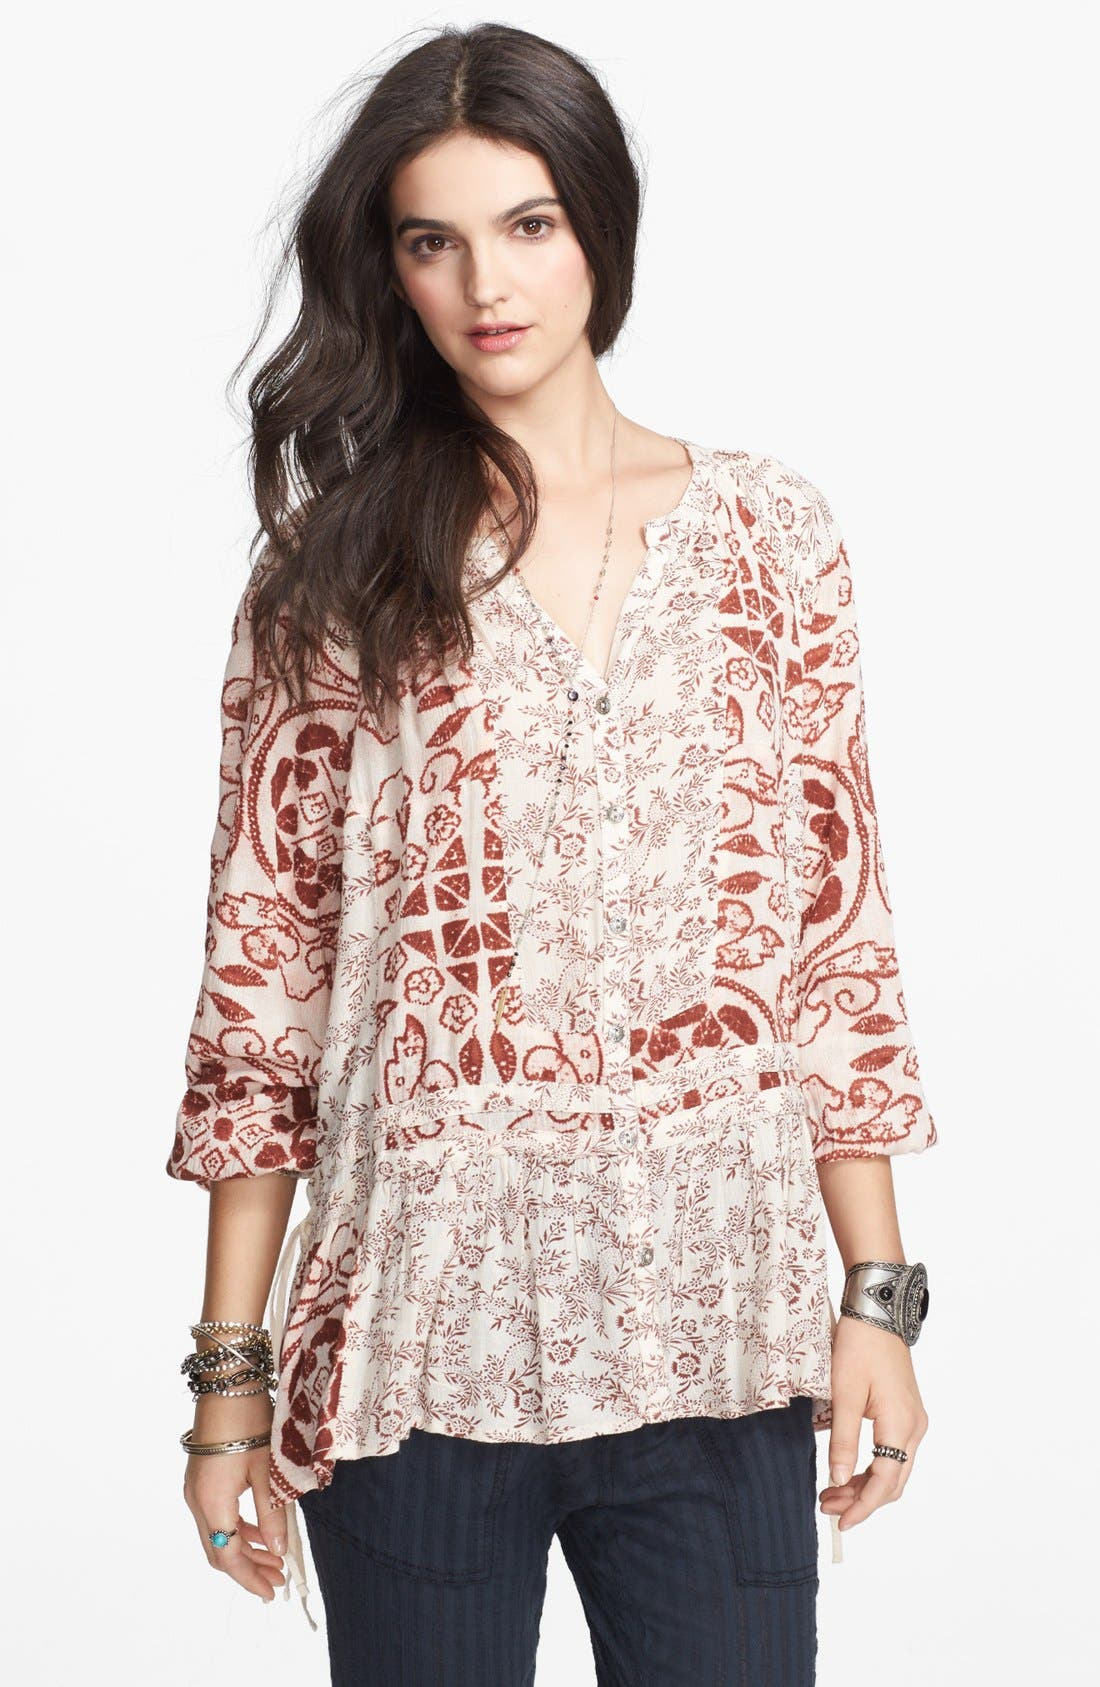 Alternate Image 1 Selected - Free People 'Ratio' Print Tunic Top